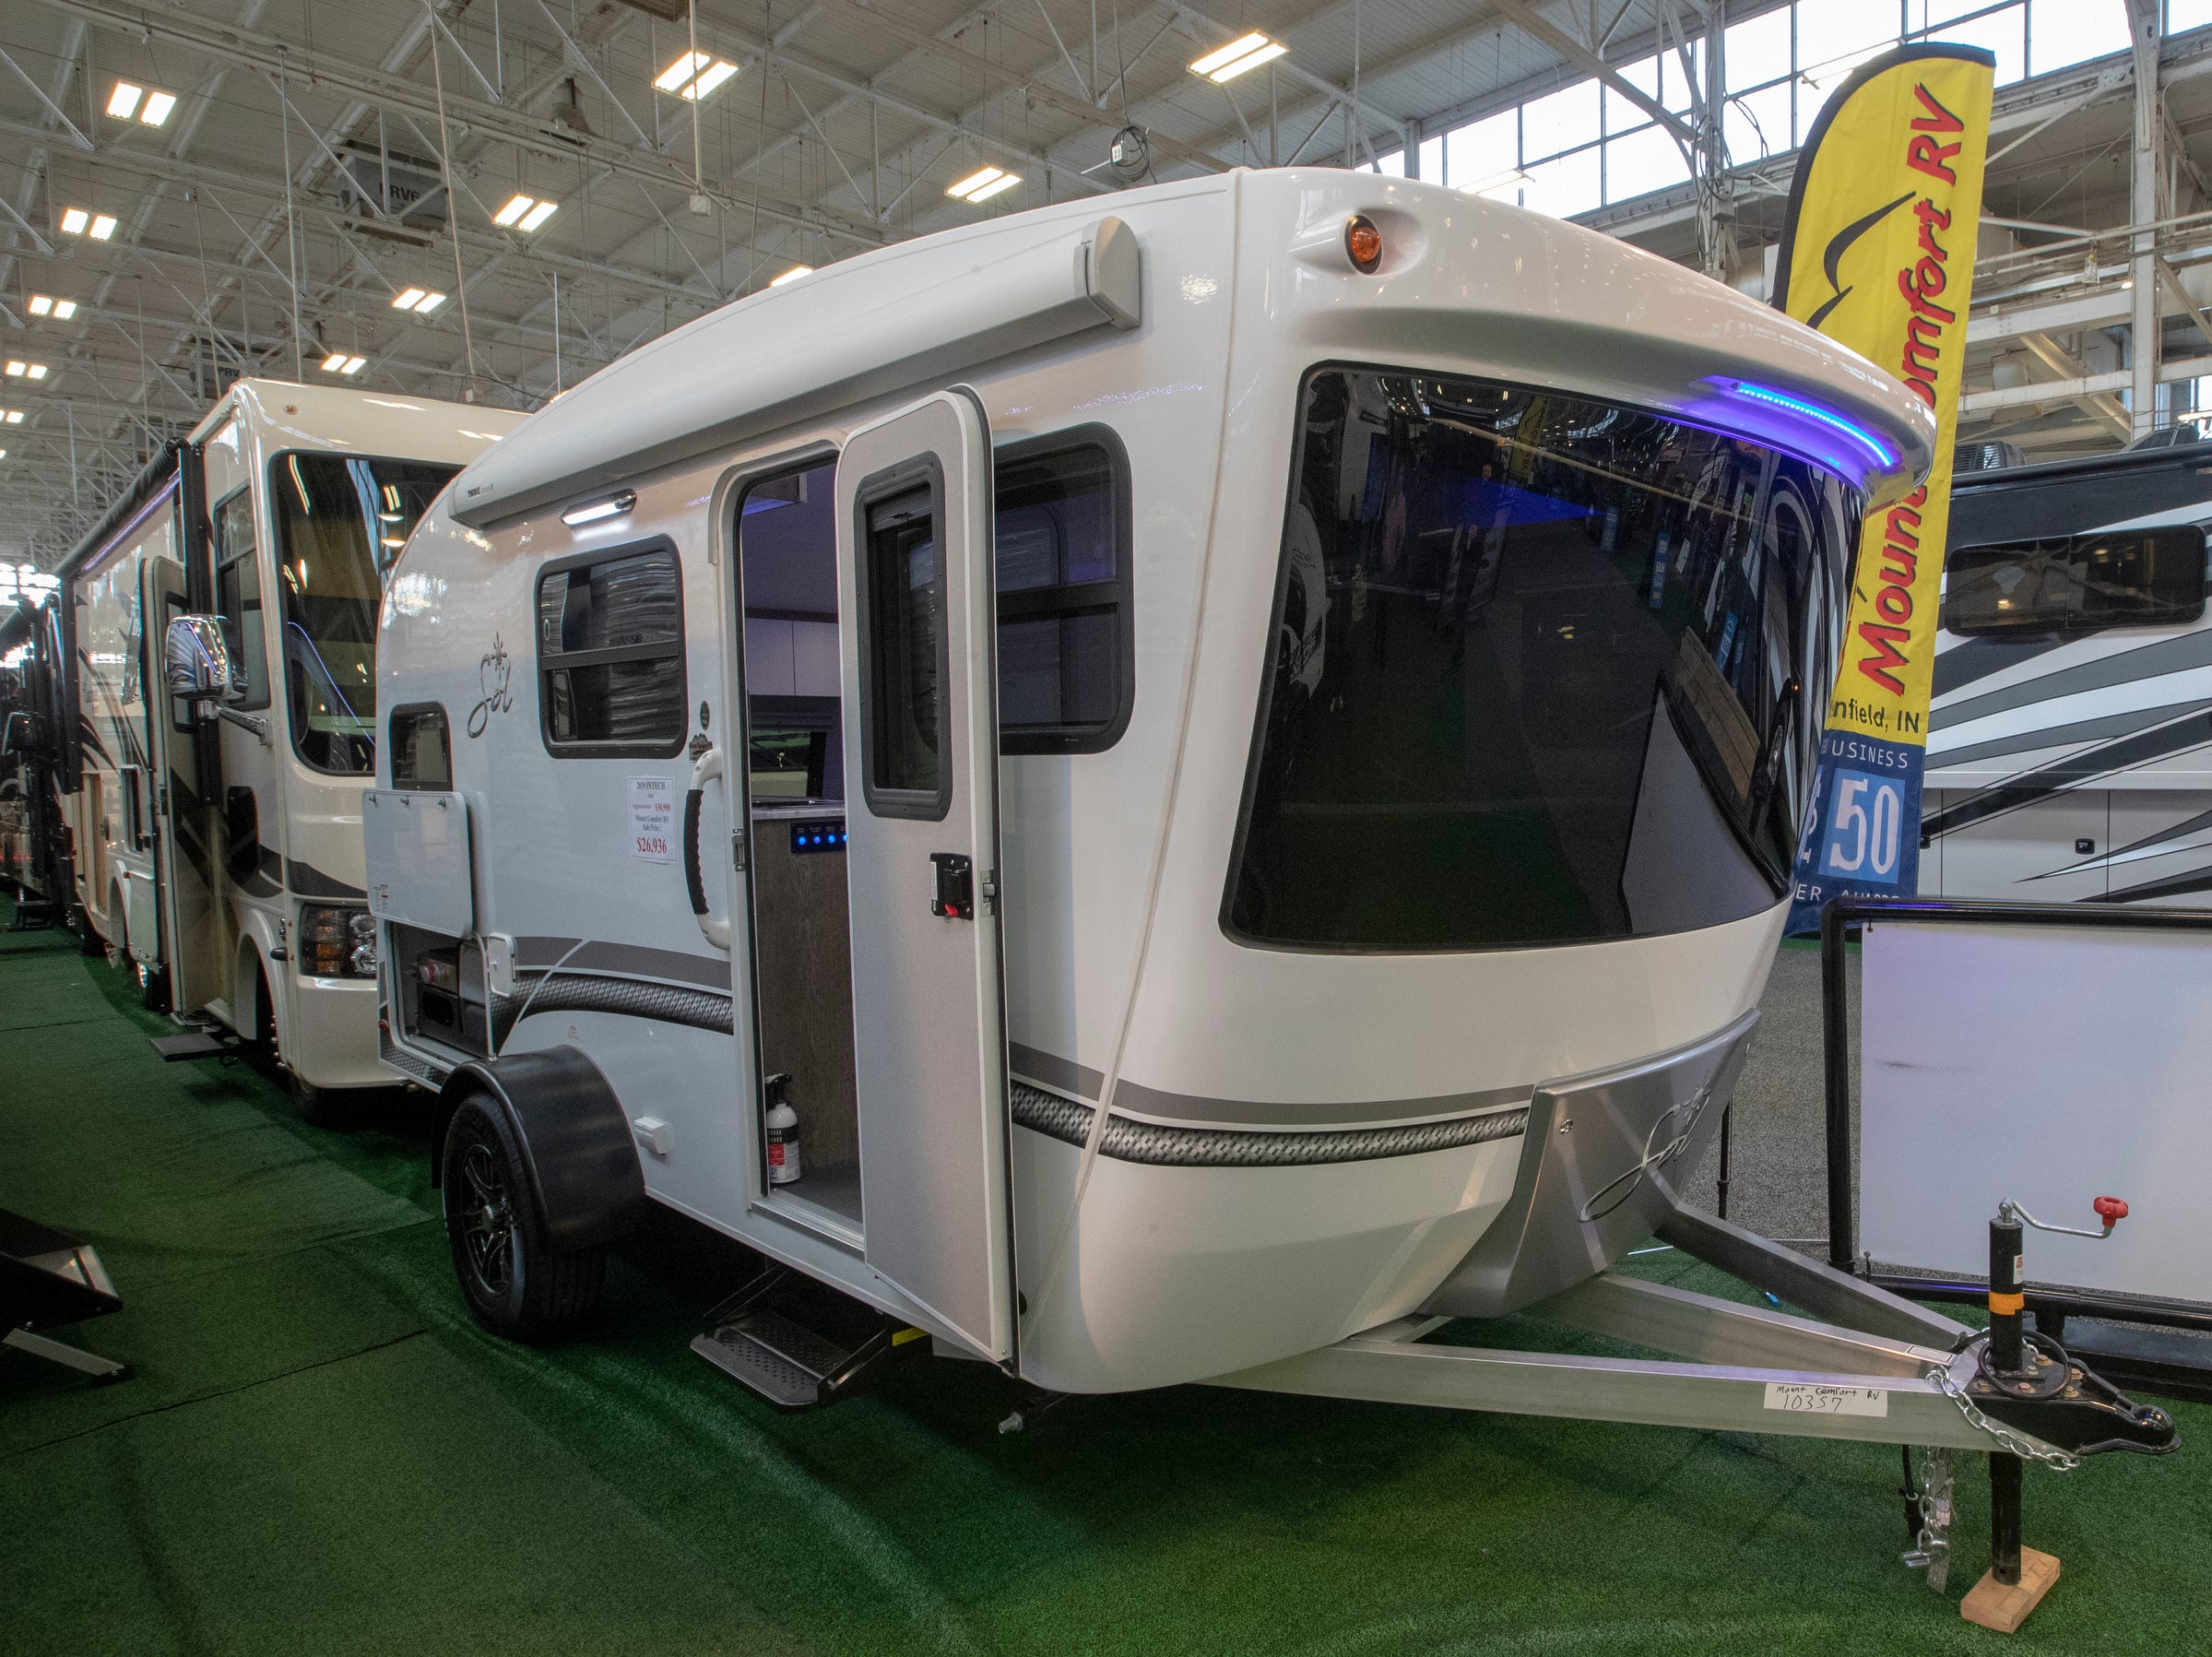 Indy RV Expo, Indiana State Fairgrounds, Indianapolis, Sunday, January 6, 2019. The show runs through the 13th.